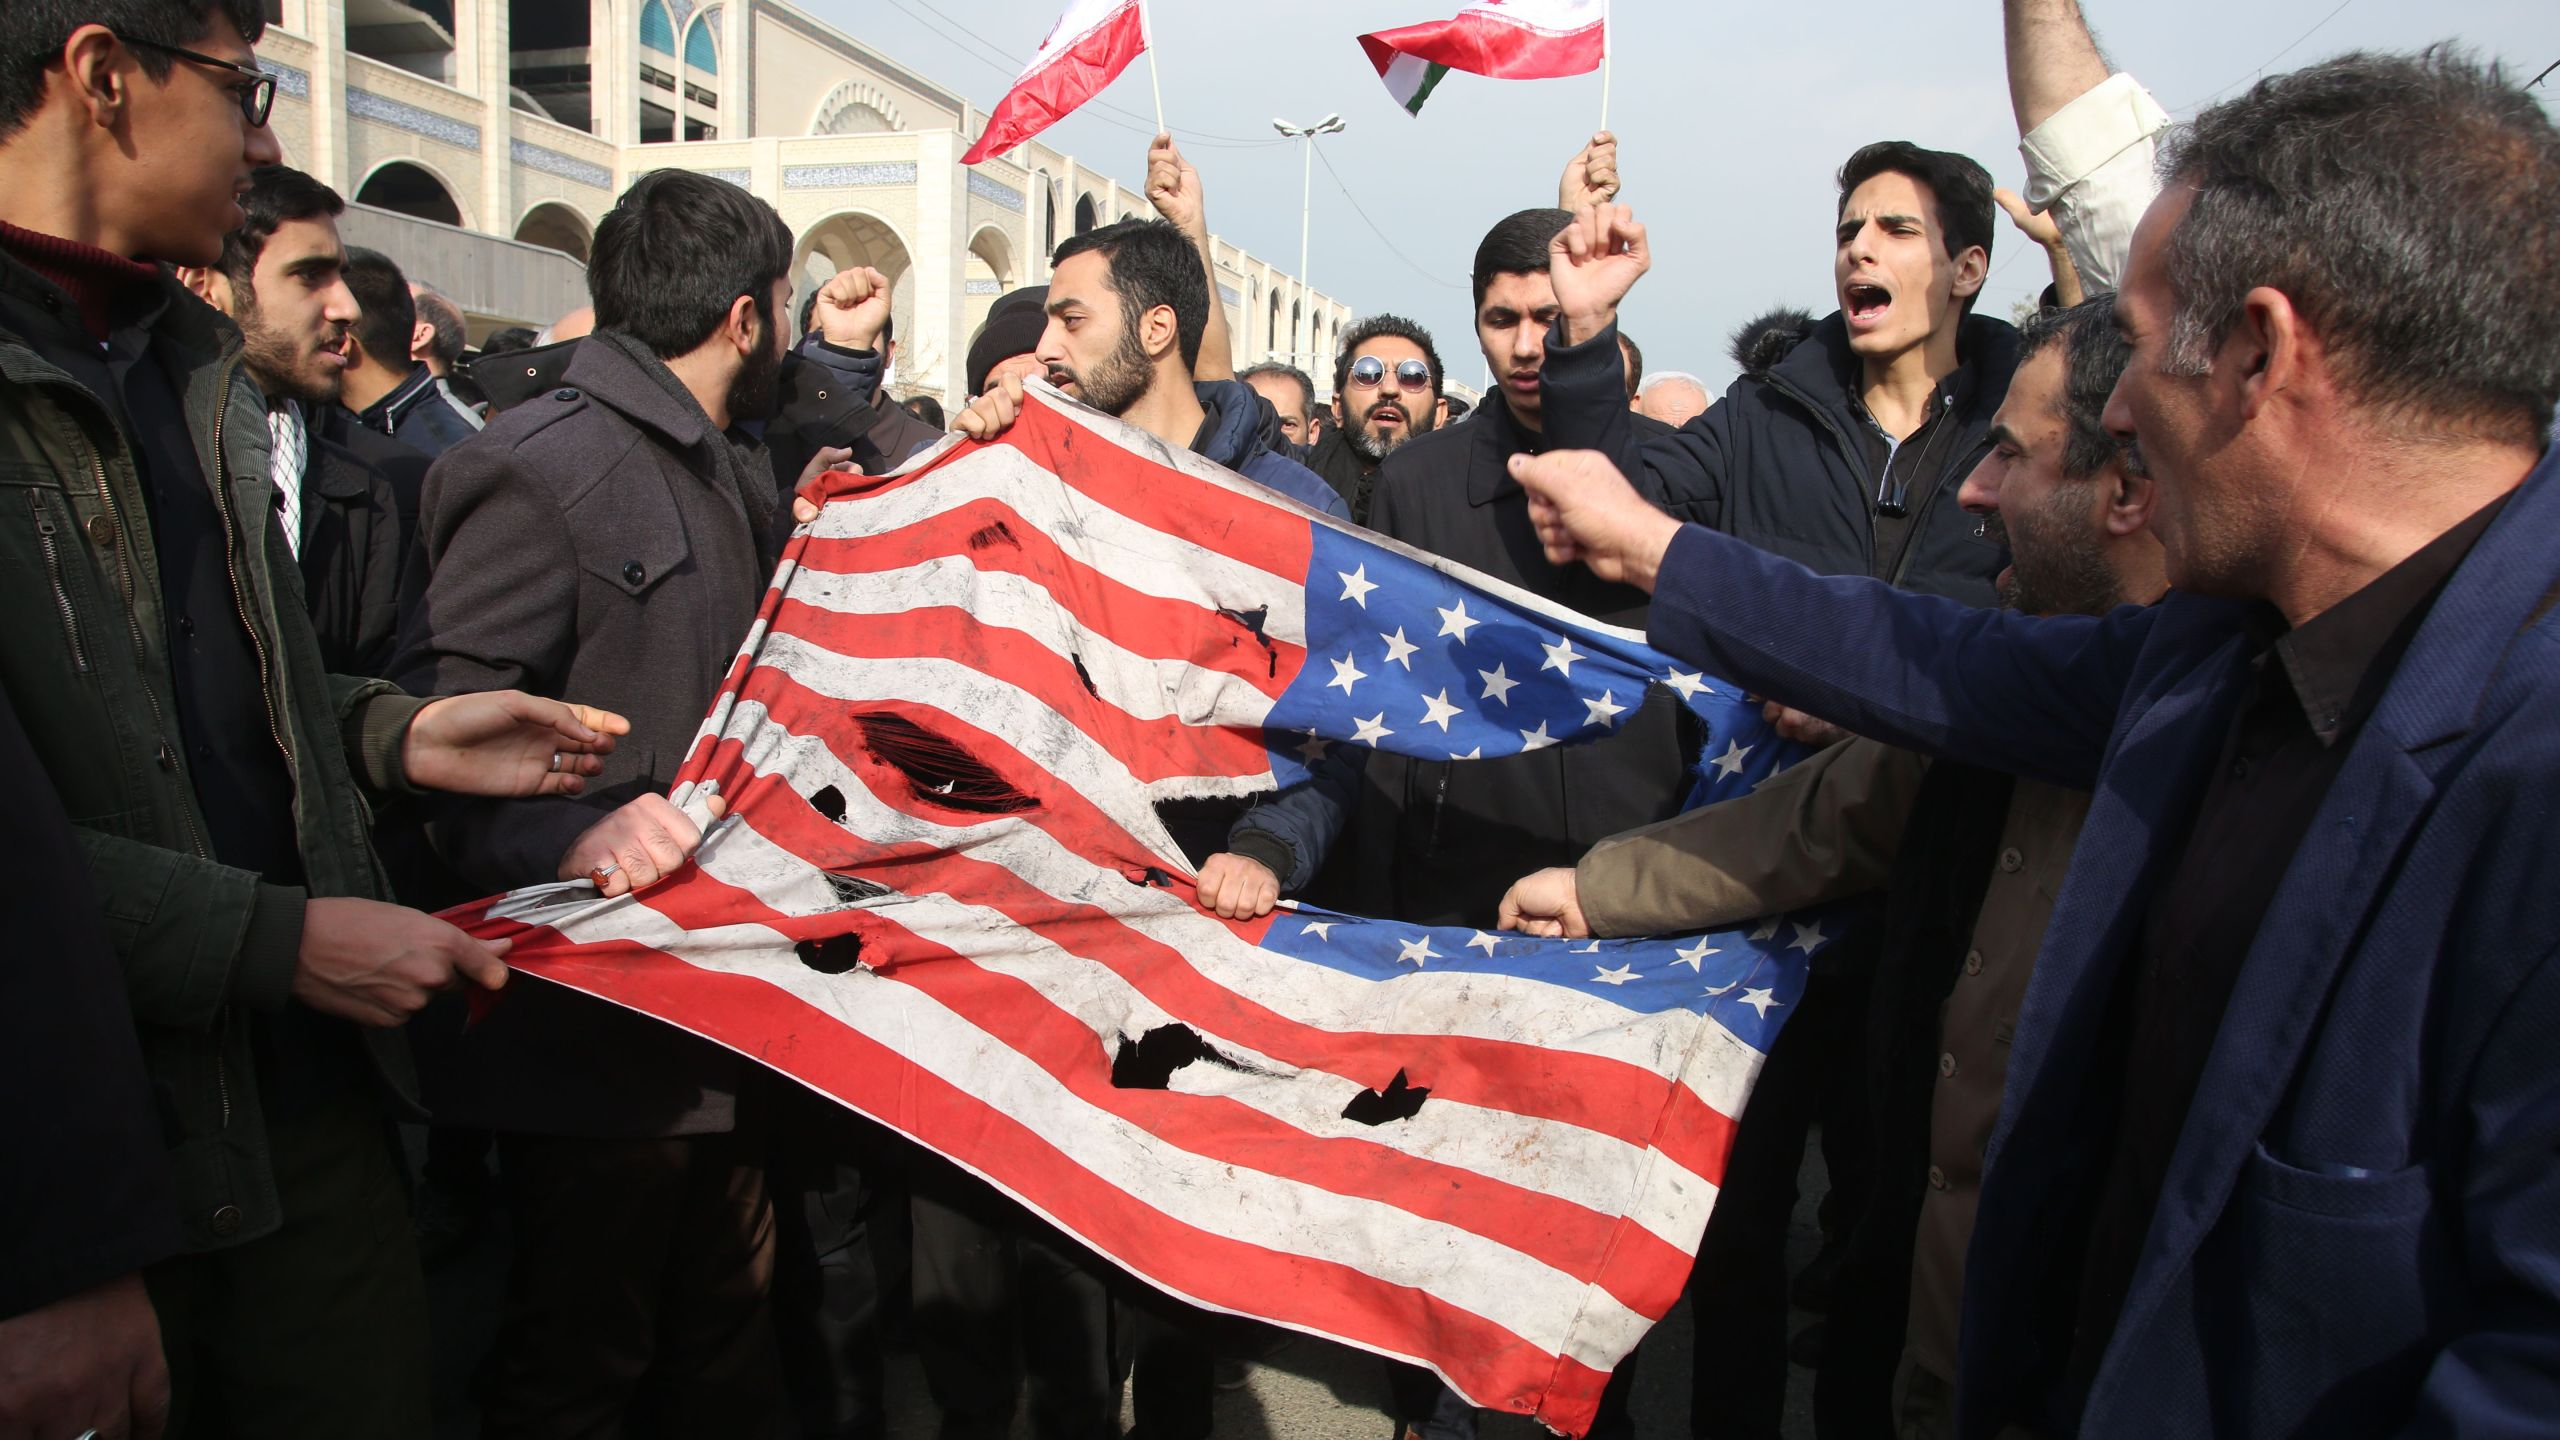 Iranians tear up a U.S. flag during a demonstration in Tehran on Jan. 3, 2020, following the killing of Iranian Revolutionary Guards Major General Qasem Soleimani in a U.S. strike on his convoy at Baghdad international airport. (Credit: Atta Kenare/AFP via Getty Images)